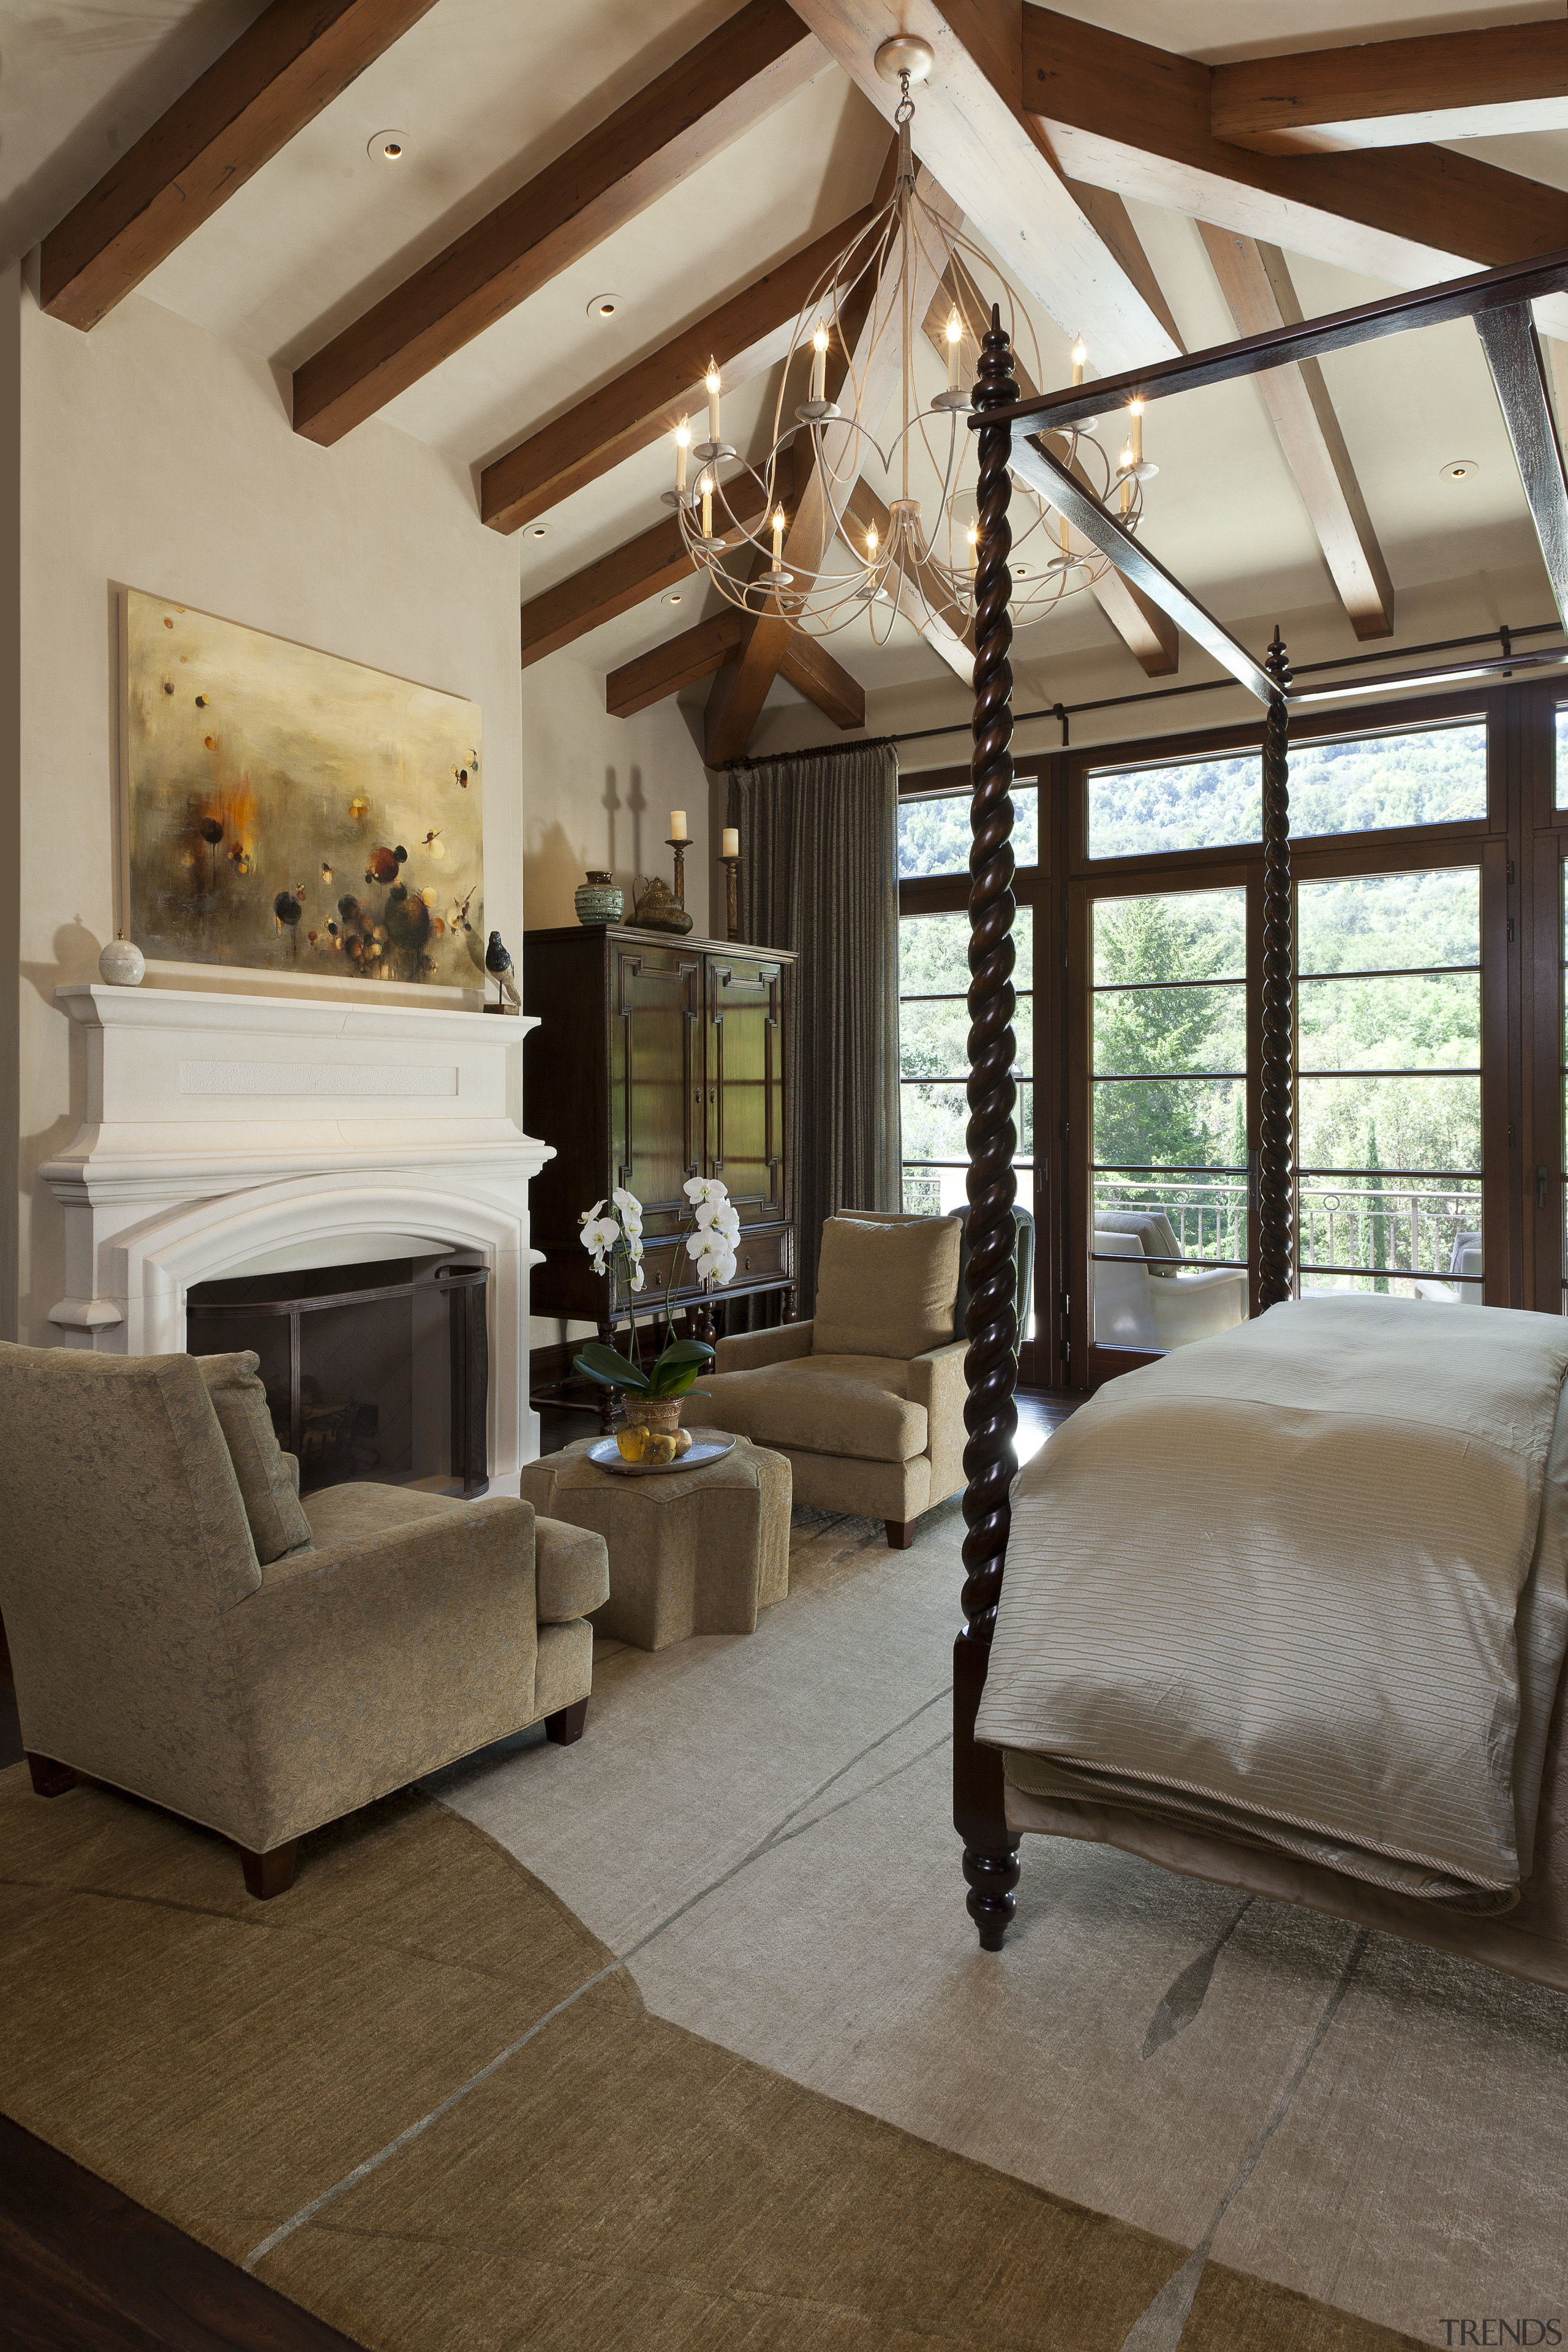 The master bedroom in this Mediterranean Californian home ceiling, floor, home, interior design, living room, room, window, brown, gray